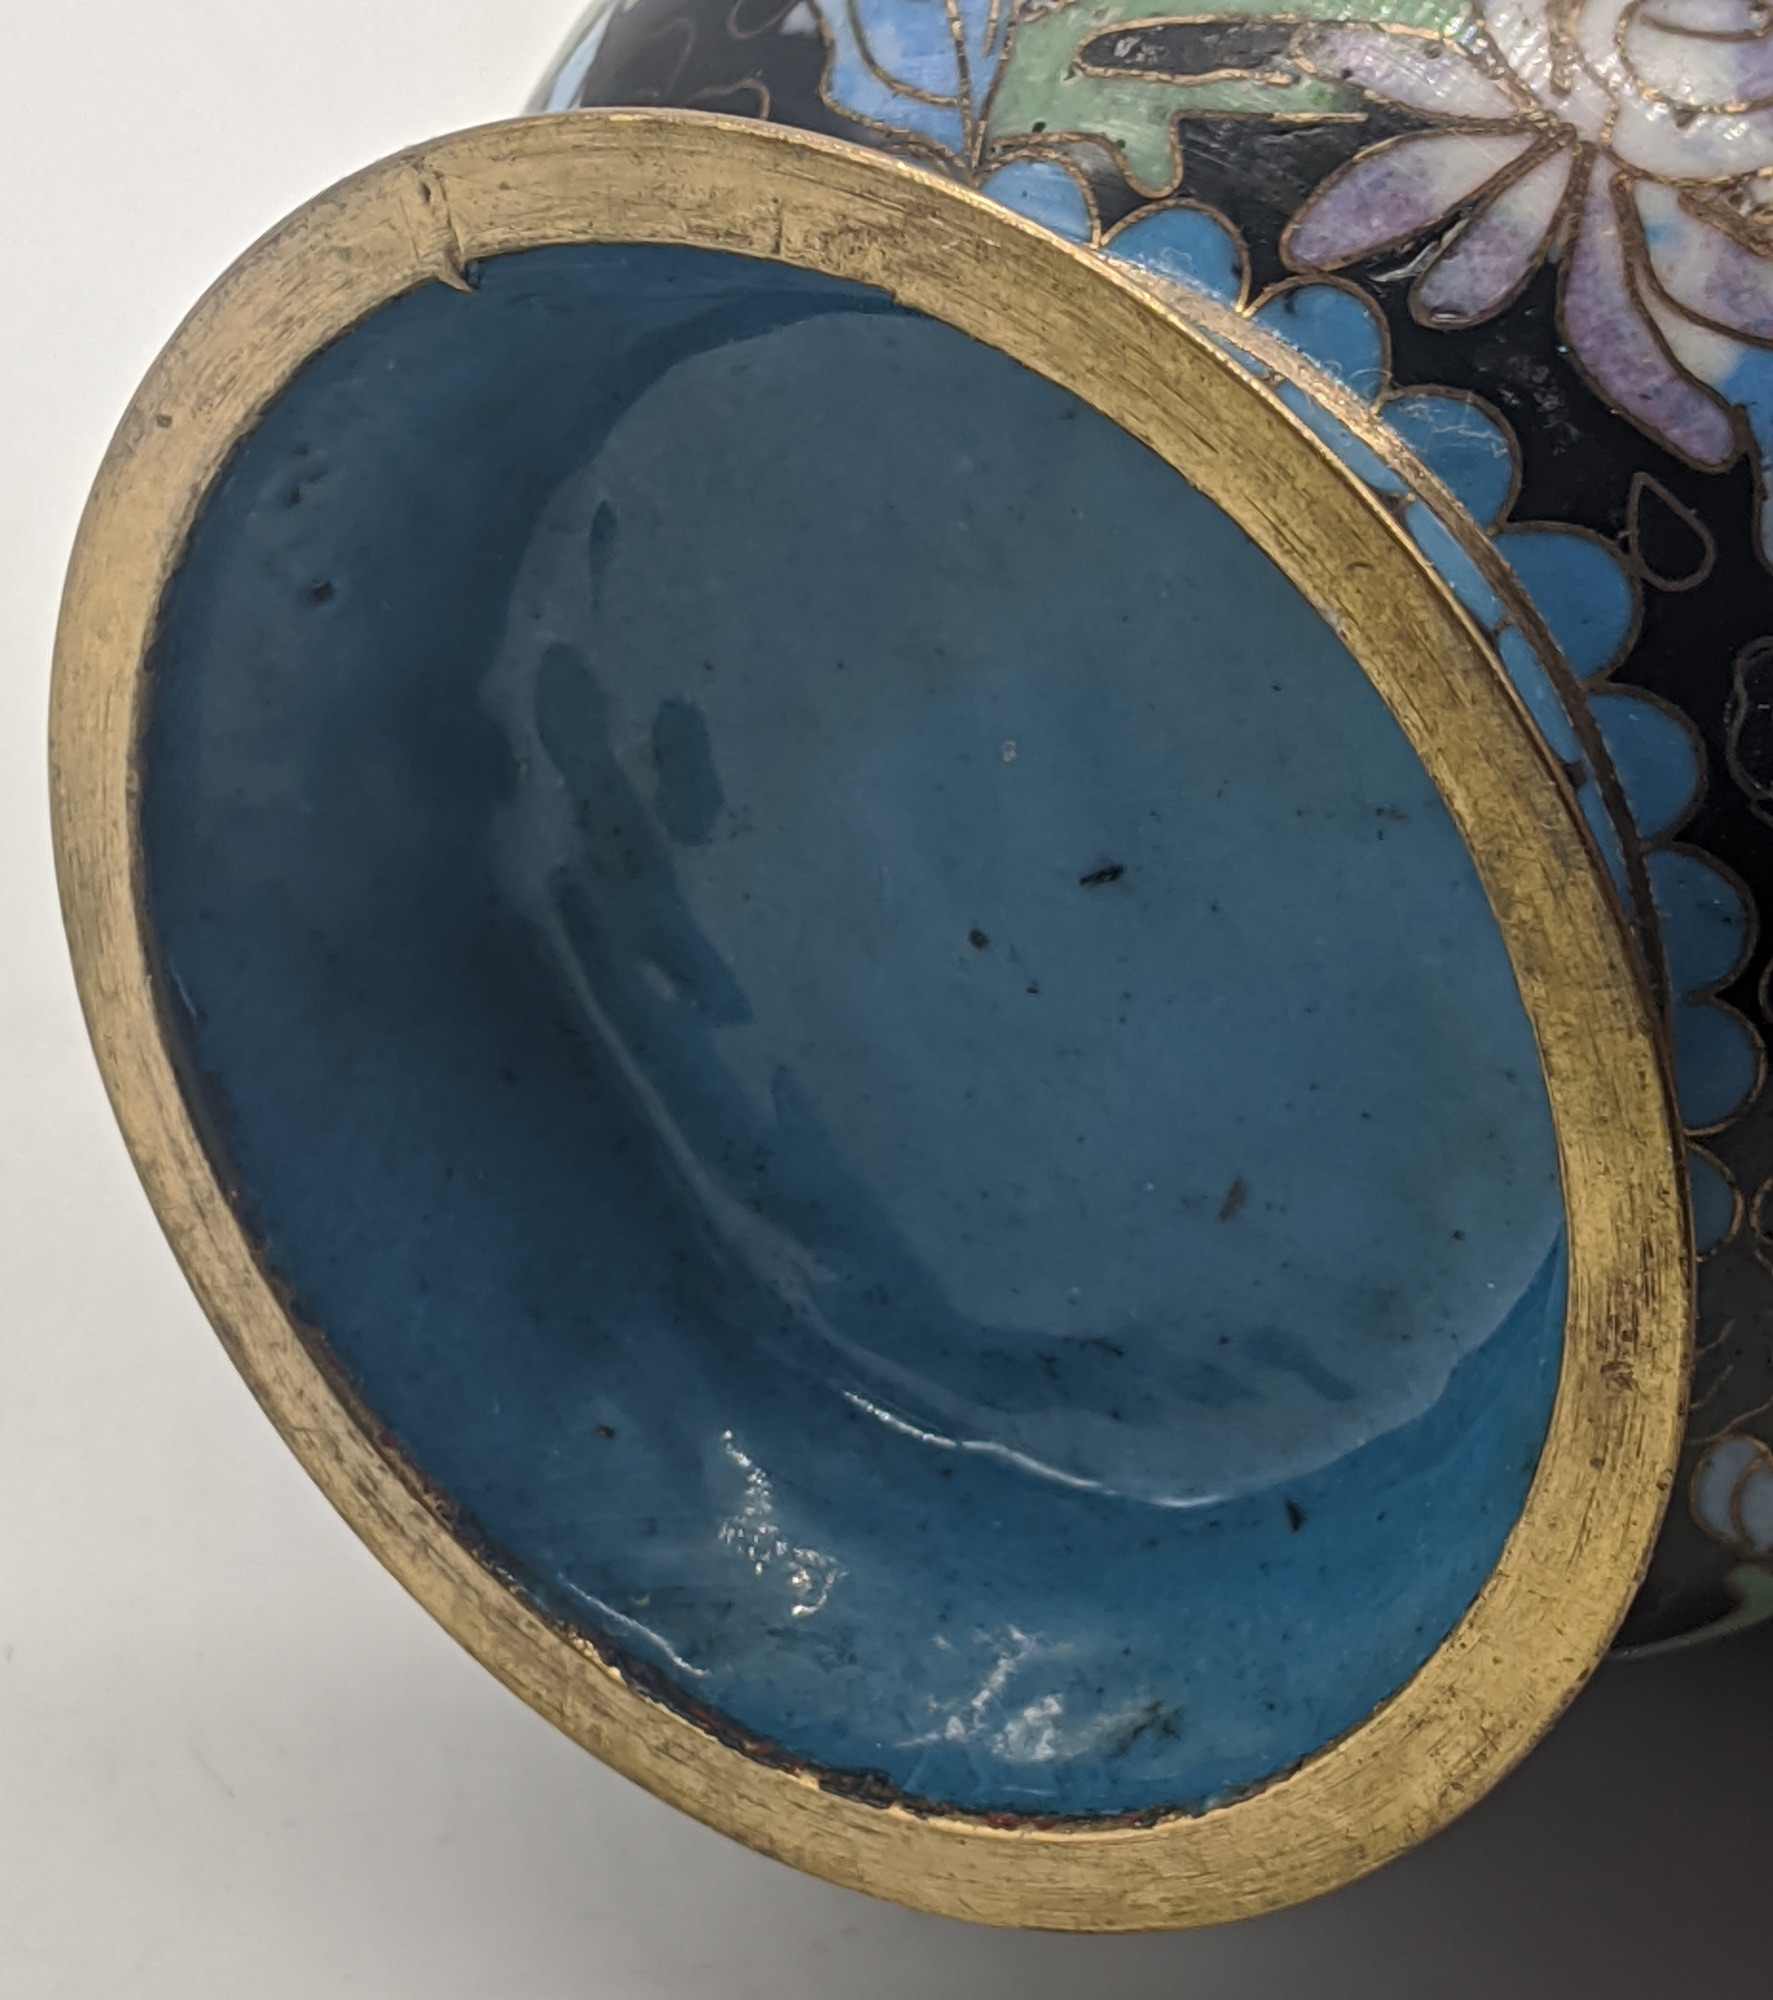 A late 19th/early 20th century Chinese cloisonne enamel brush pot, H.8.5cm - Image 2 of 3